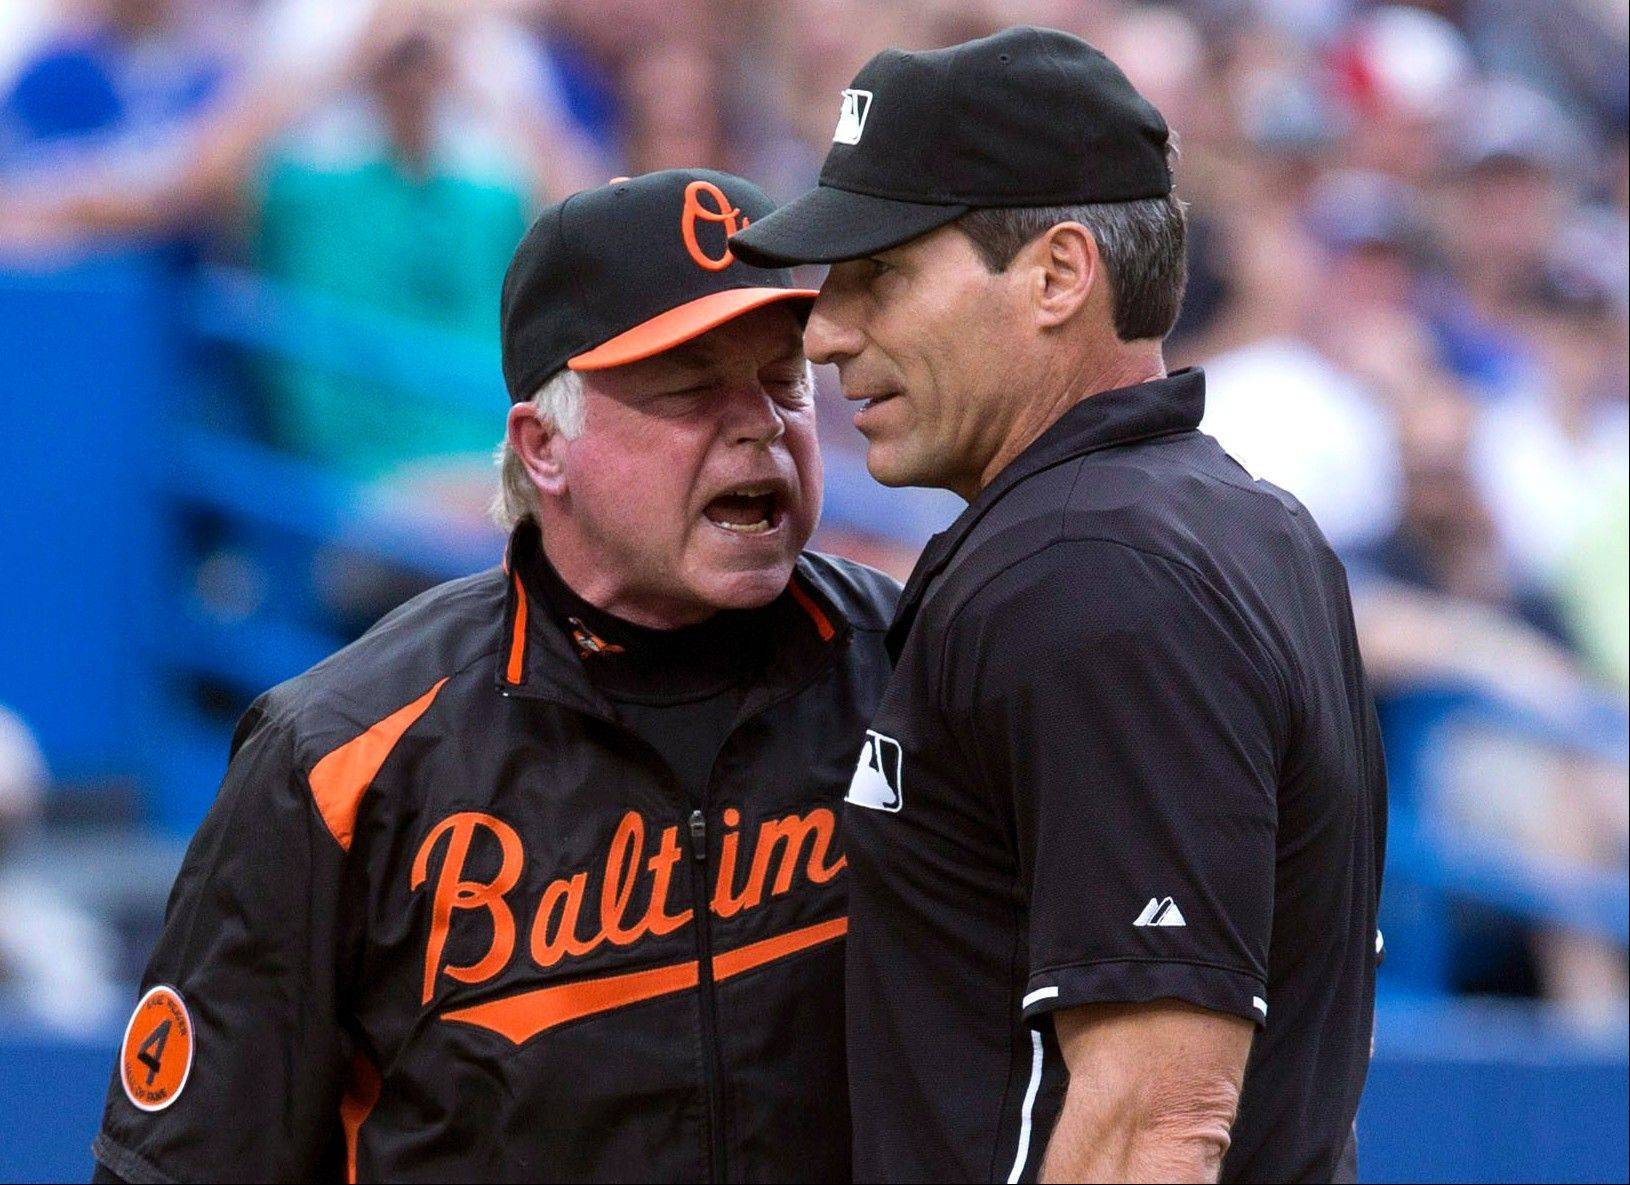 While there is plenty of talking in baseball over calls, as Baltimore Orioles manager Buck Showalter and umpire Angel Hernandez show here, the game's rule book also can trigger some lively discussion.